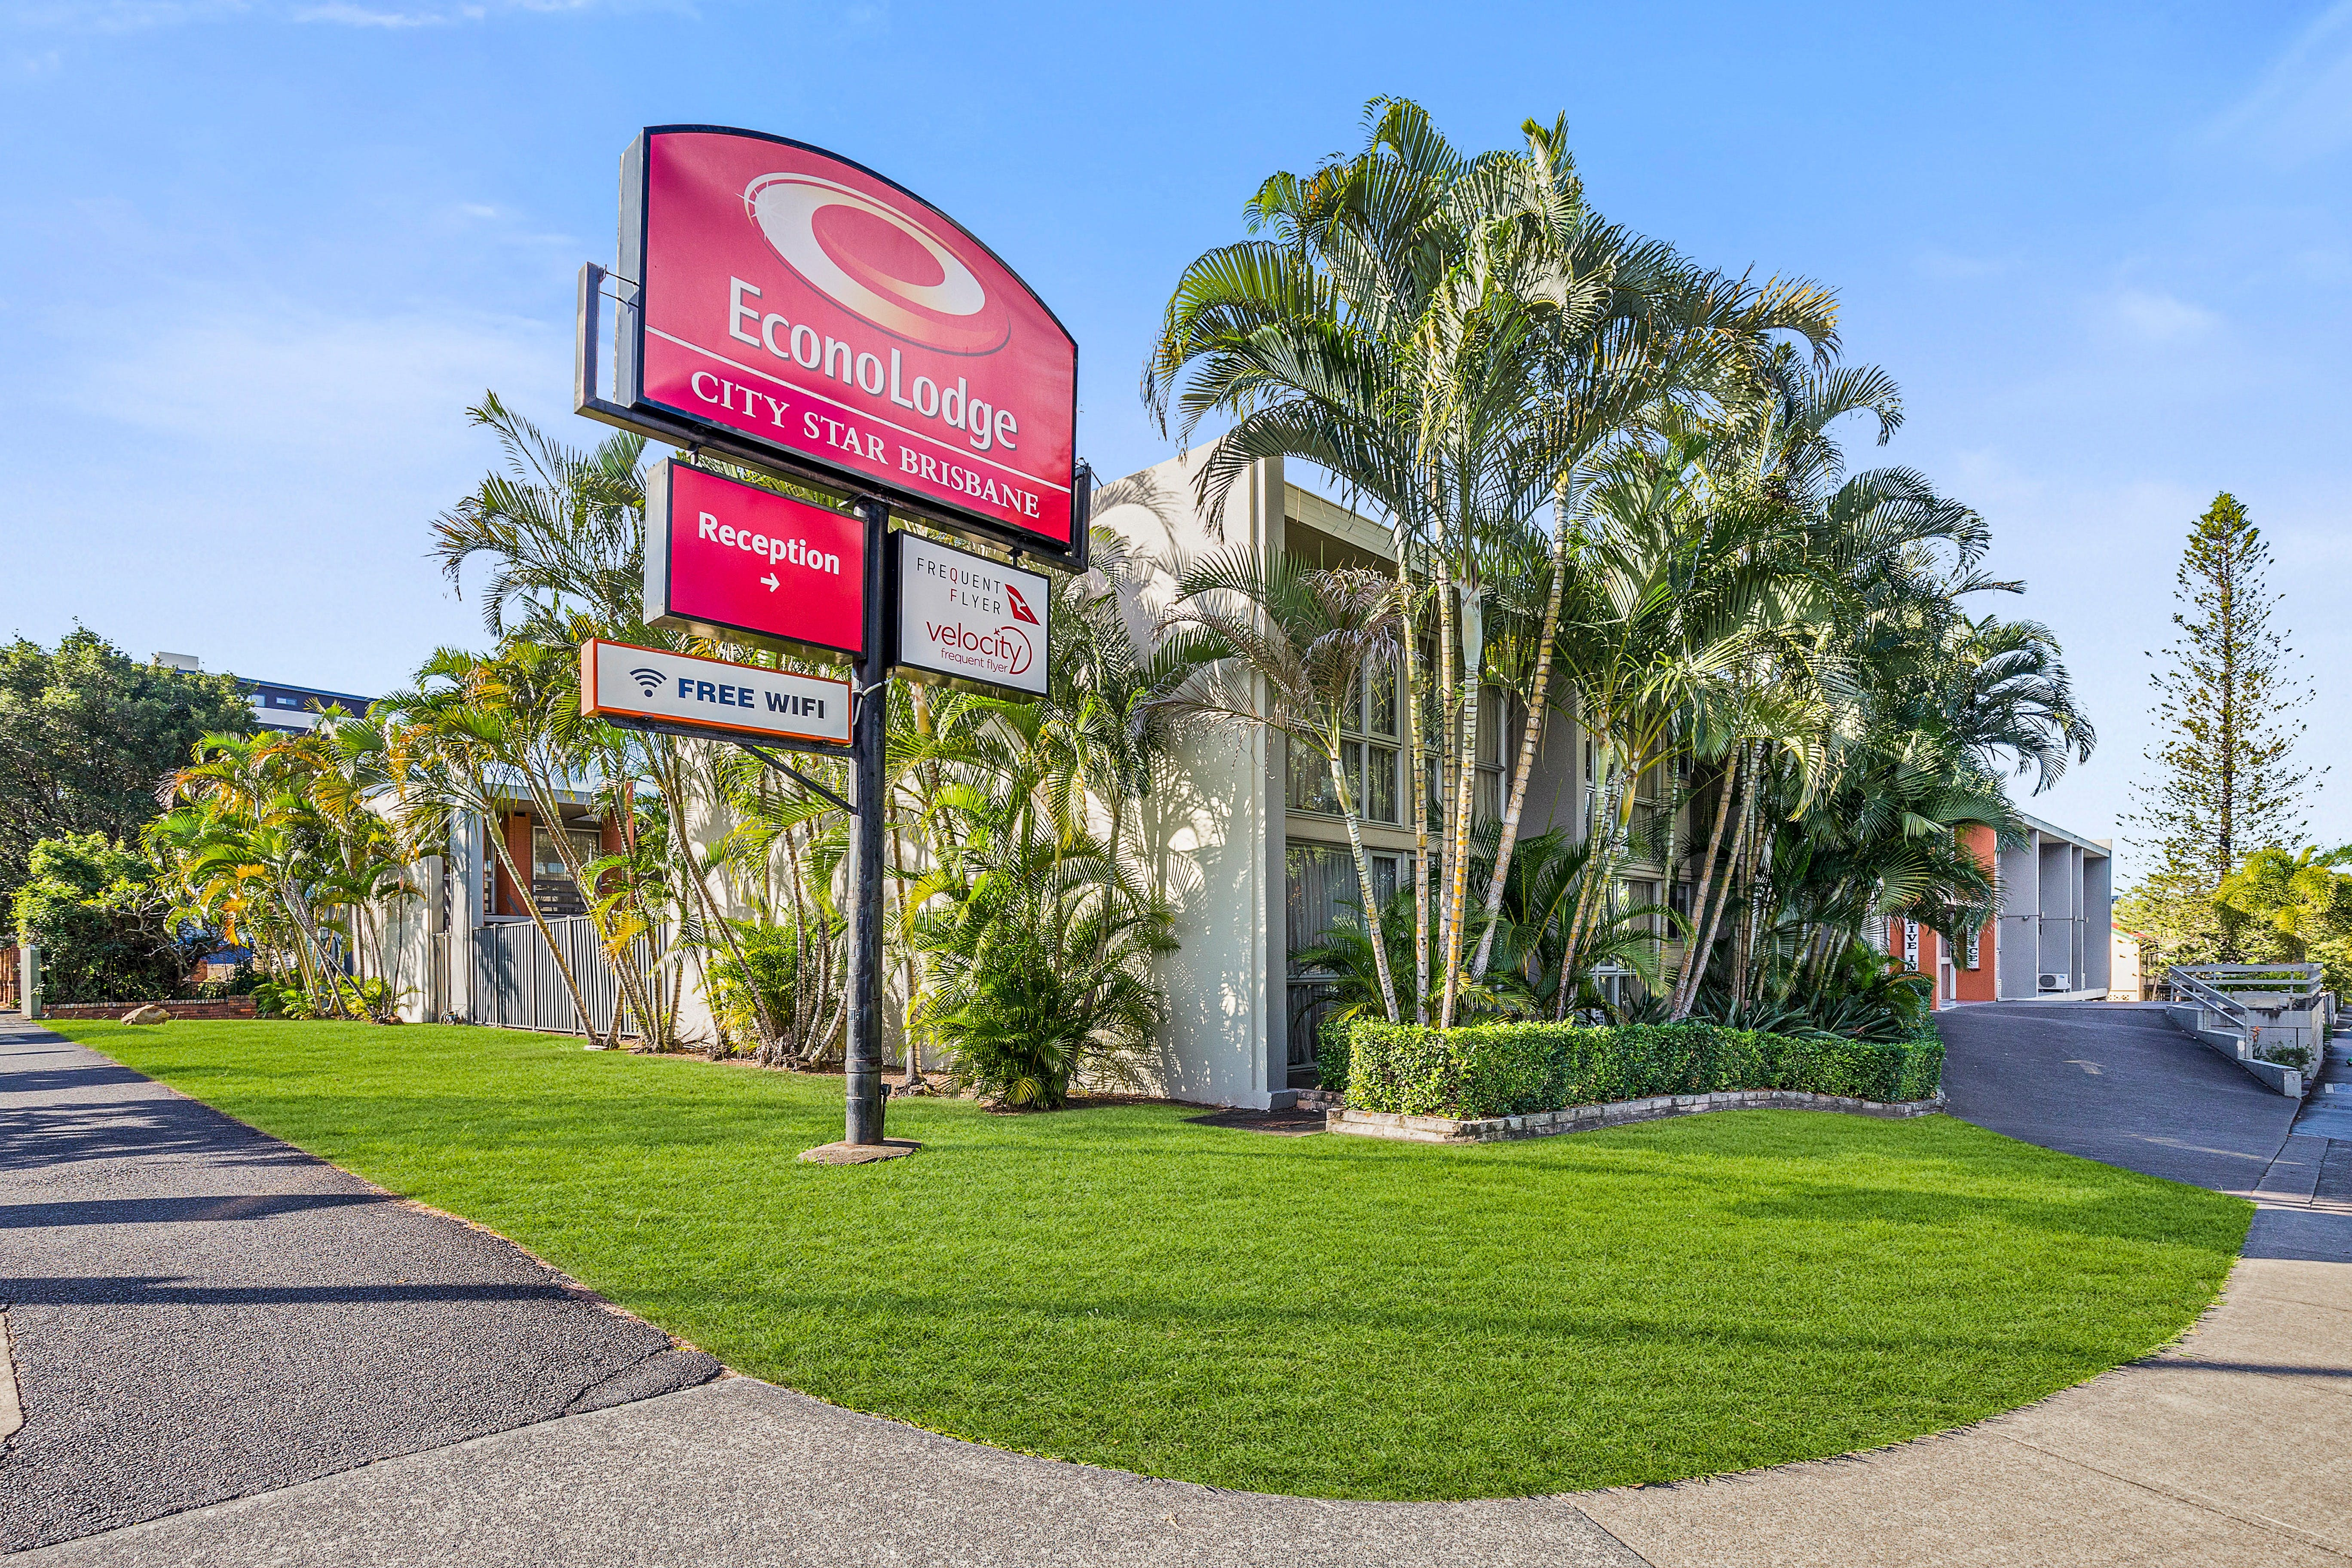 Econo Lodge City Star Brisbane - Whitsundays Accommodation